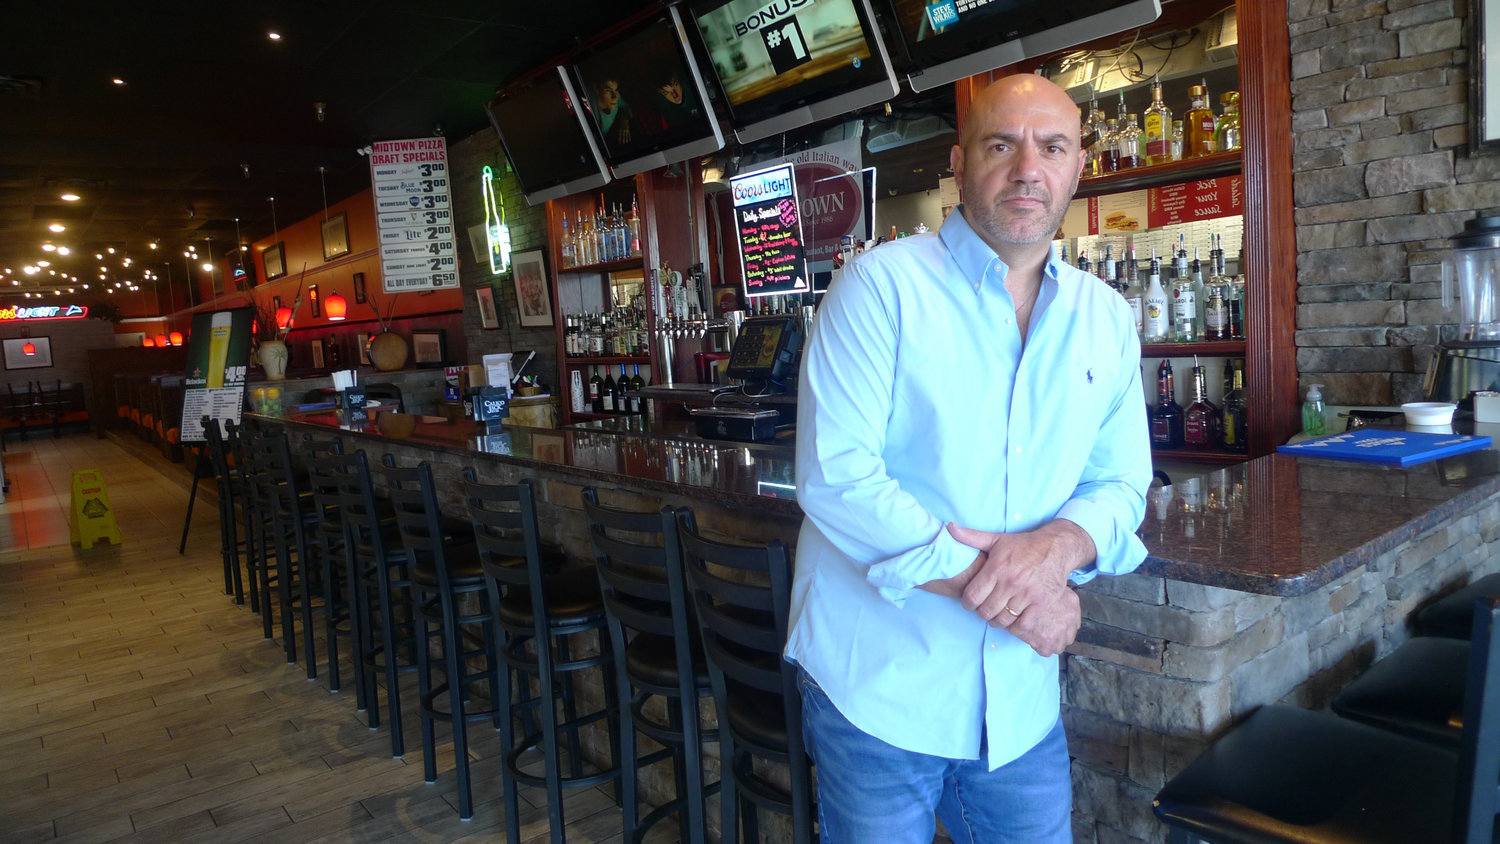 Max Randazzo, the owner of Midtown Pizza, has purchased the former Black Horse Tavern. He will reopen the restaurant under a new name - the Old Coaly Pub. Midtown Pizza will stay as it is, Randazzo says.